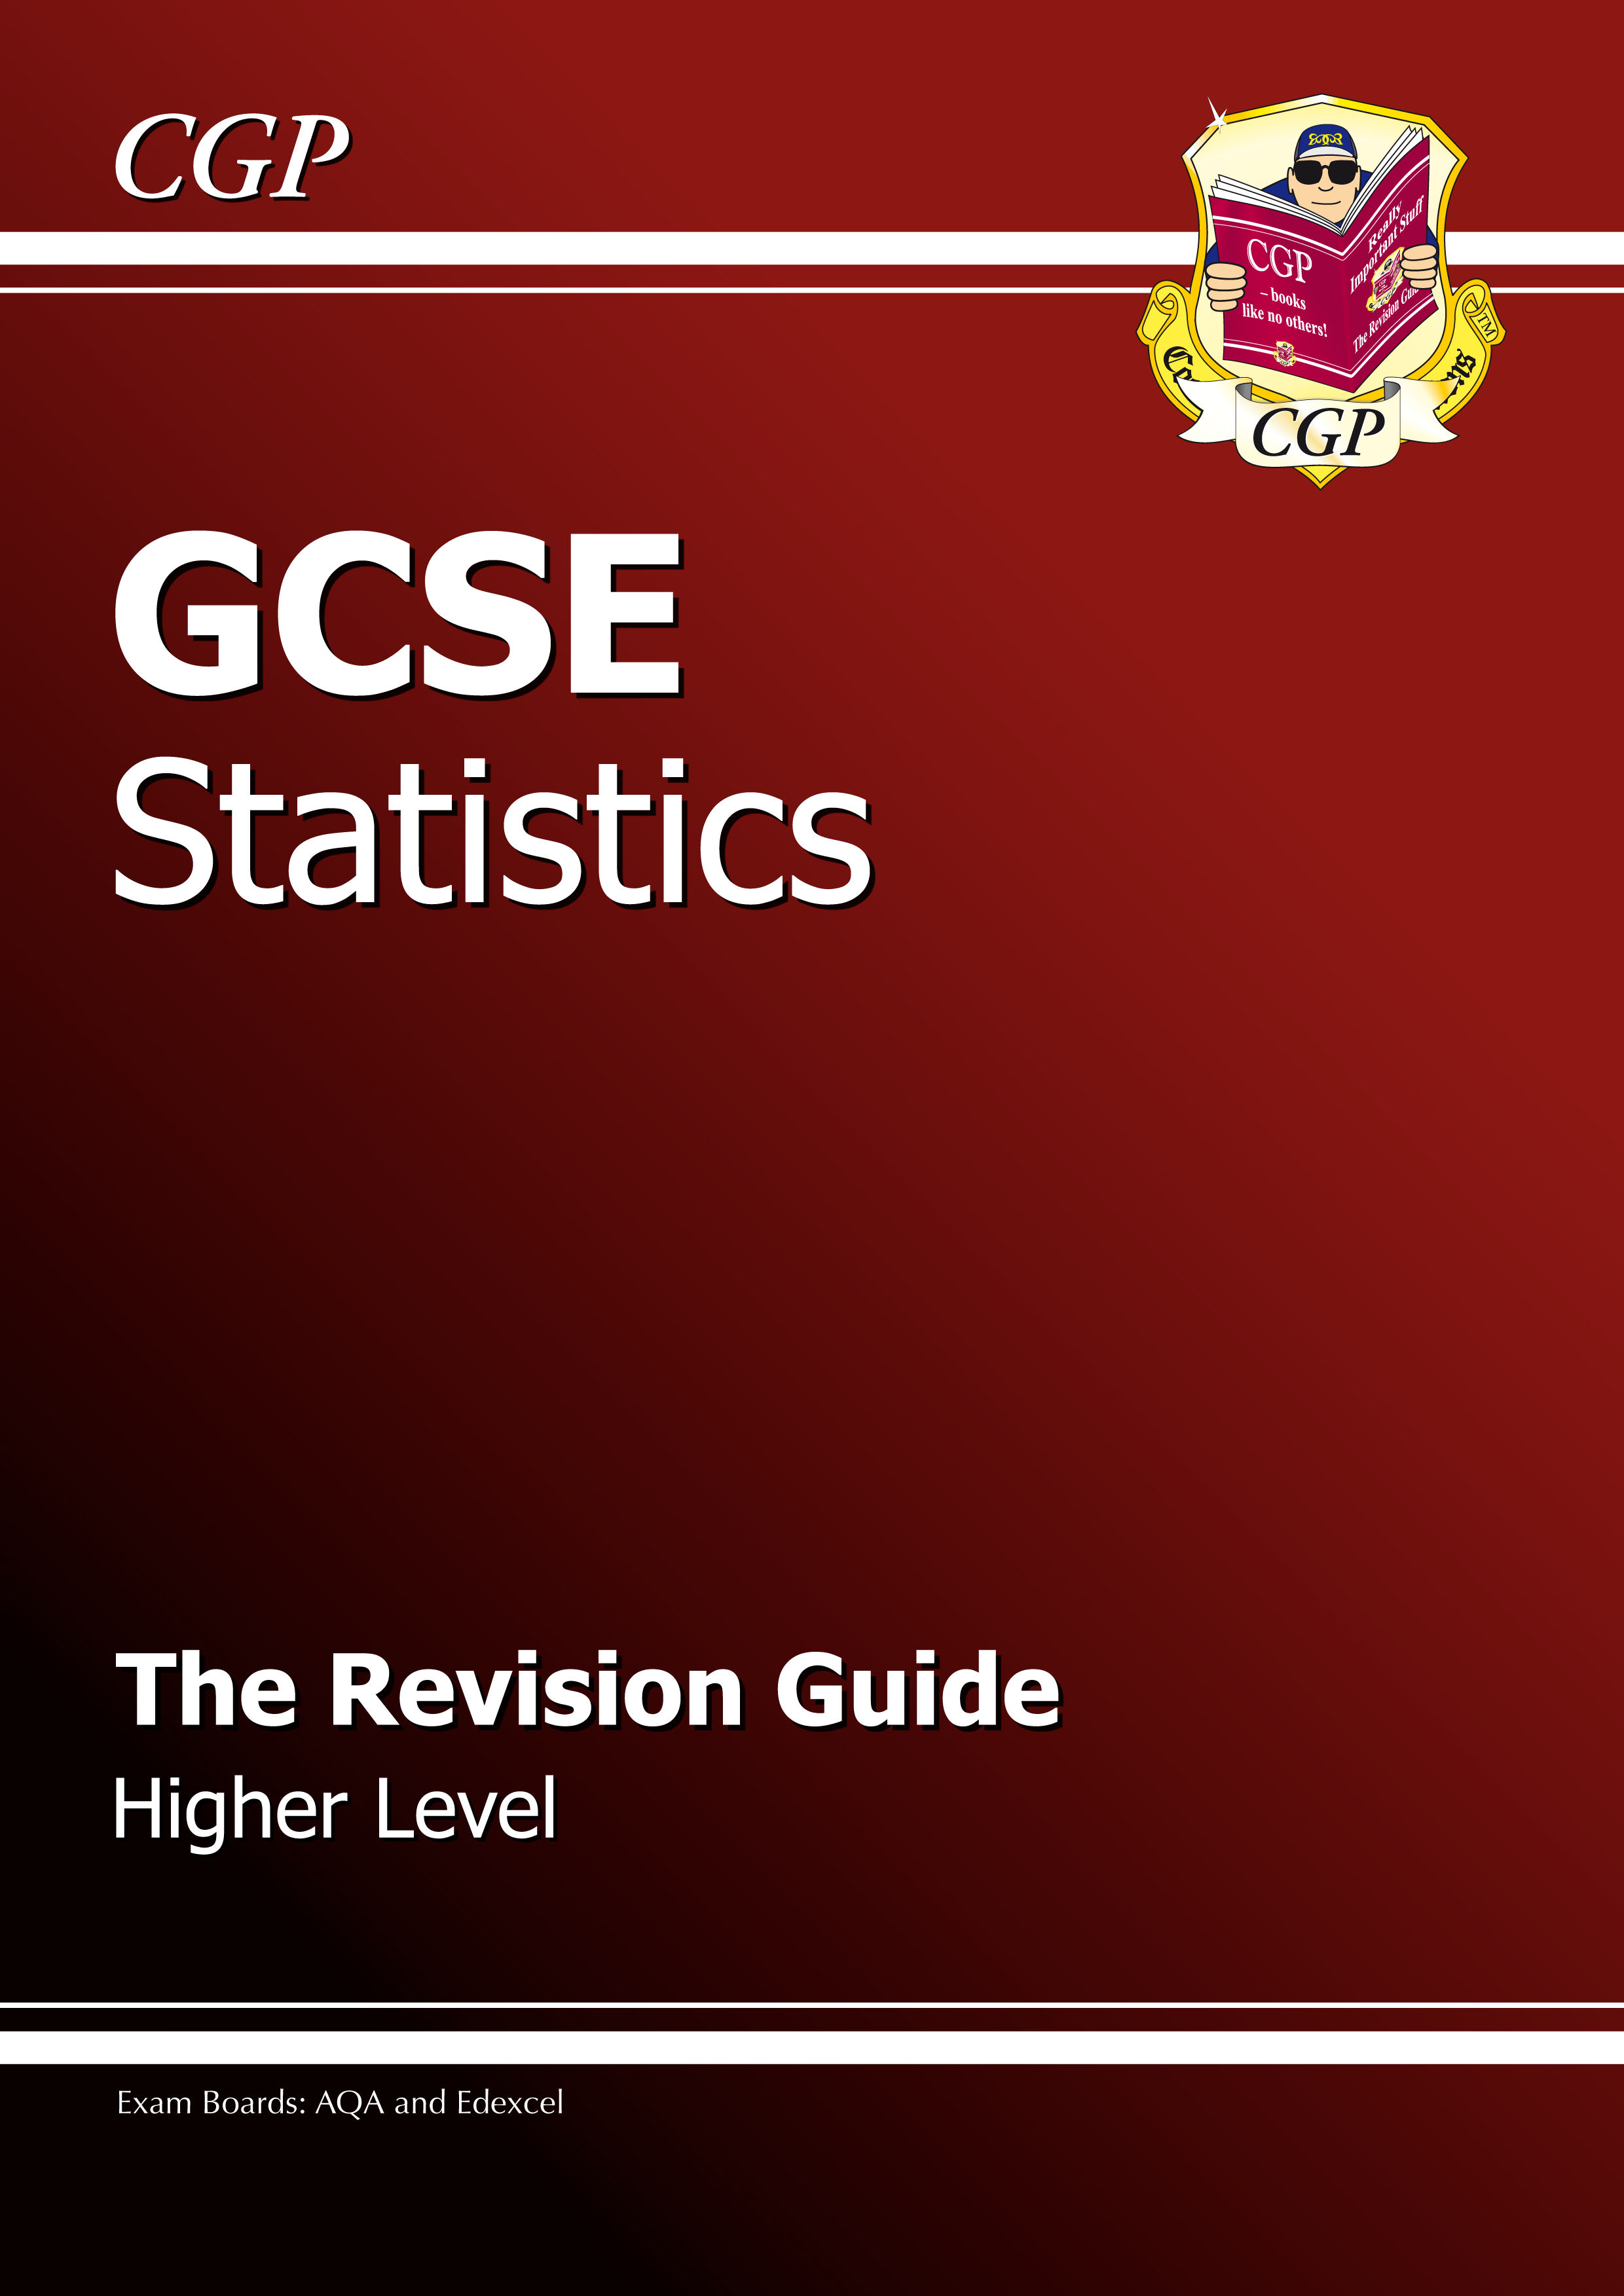 MSHR43DK - GCSE Statistics Revision Guide - Higher (A*-G course)